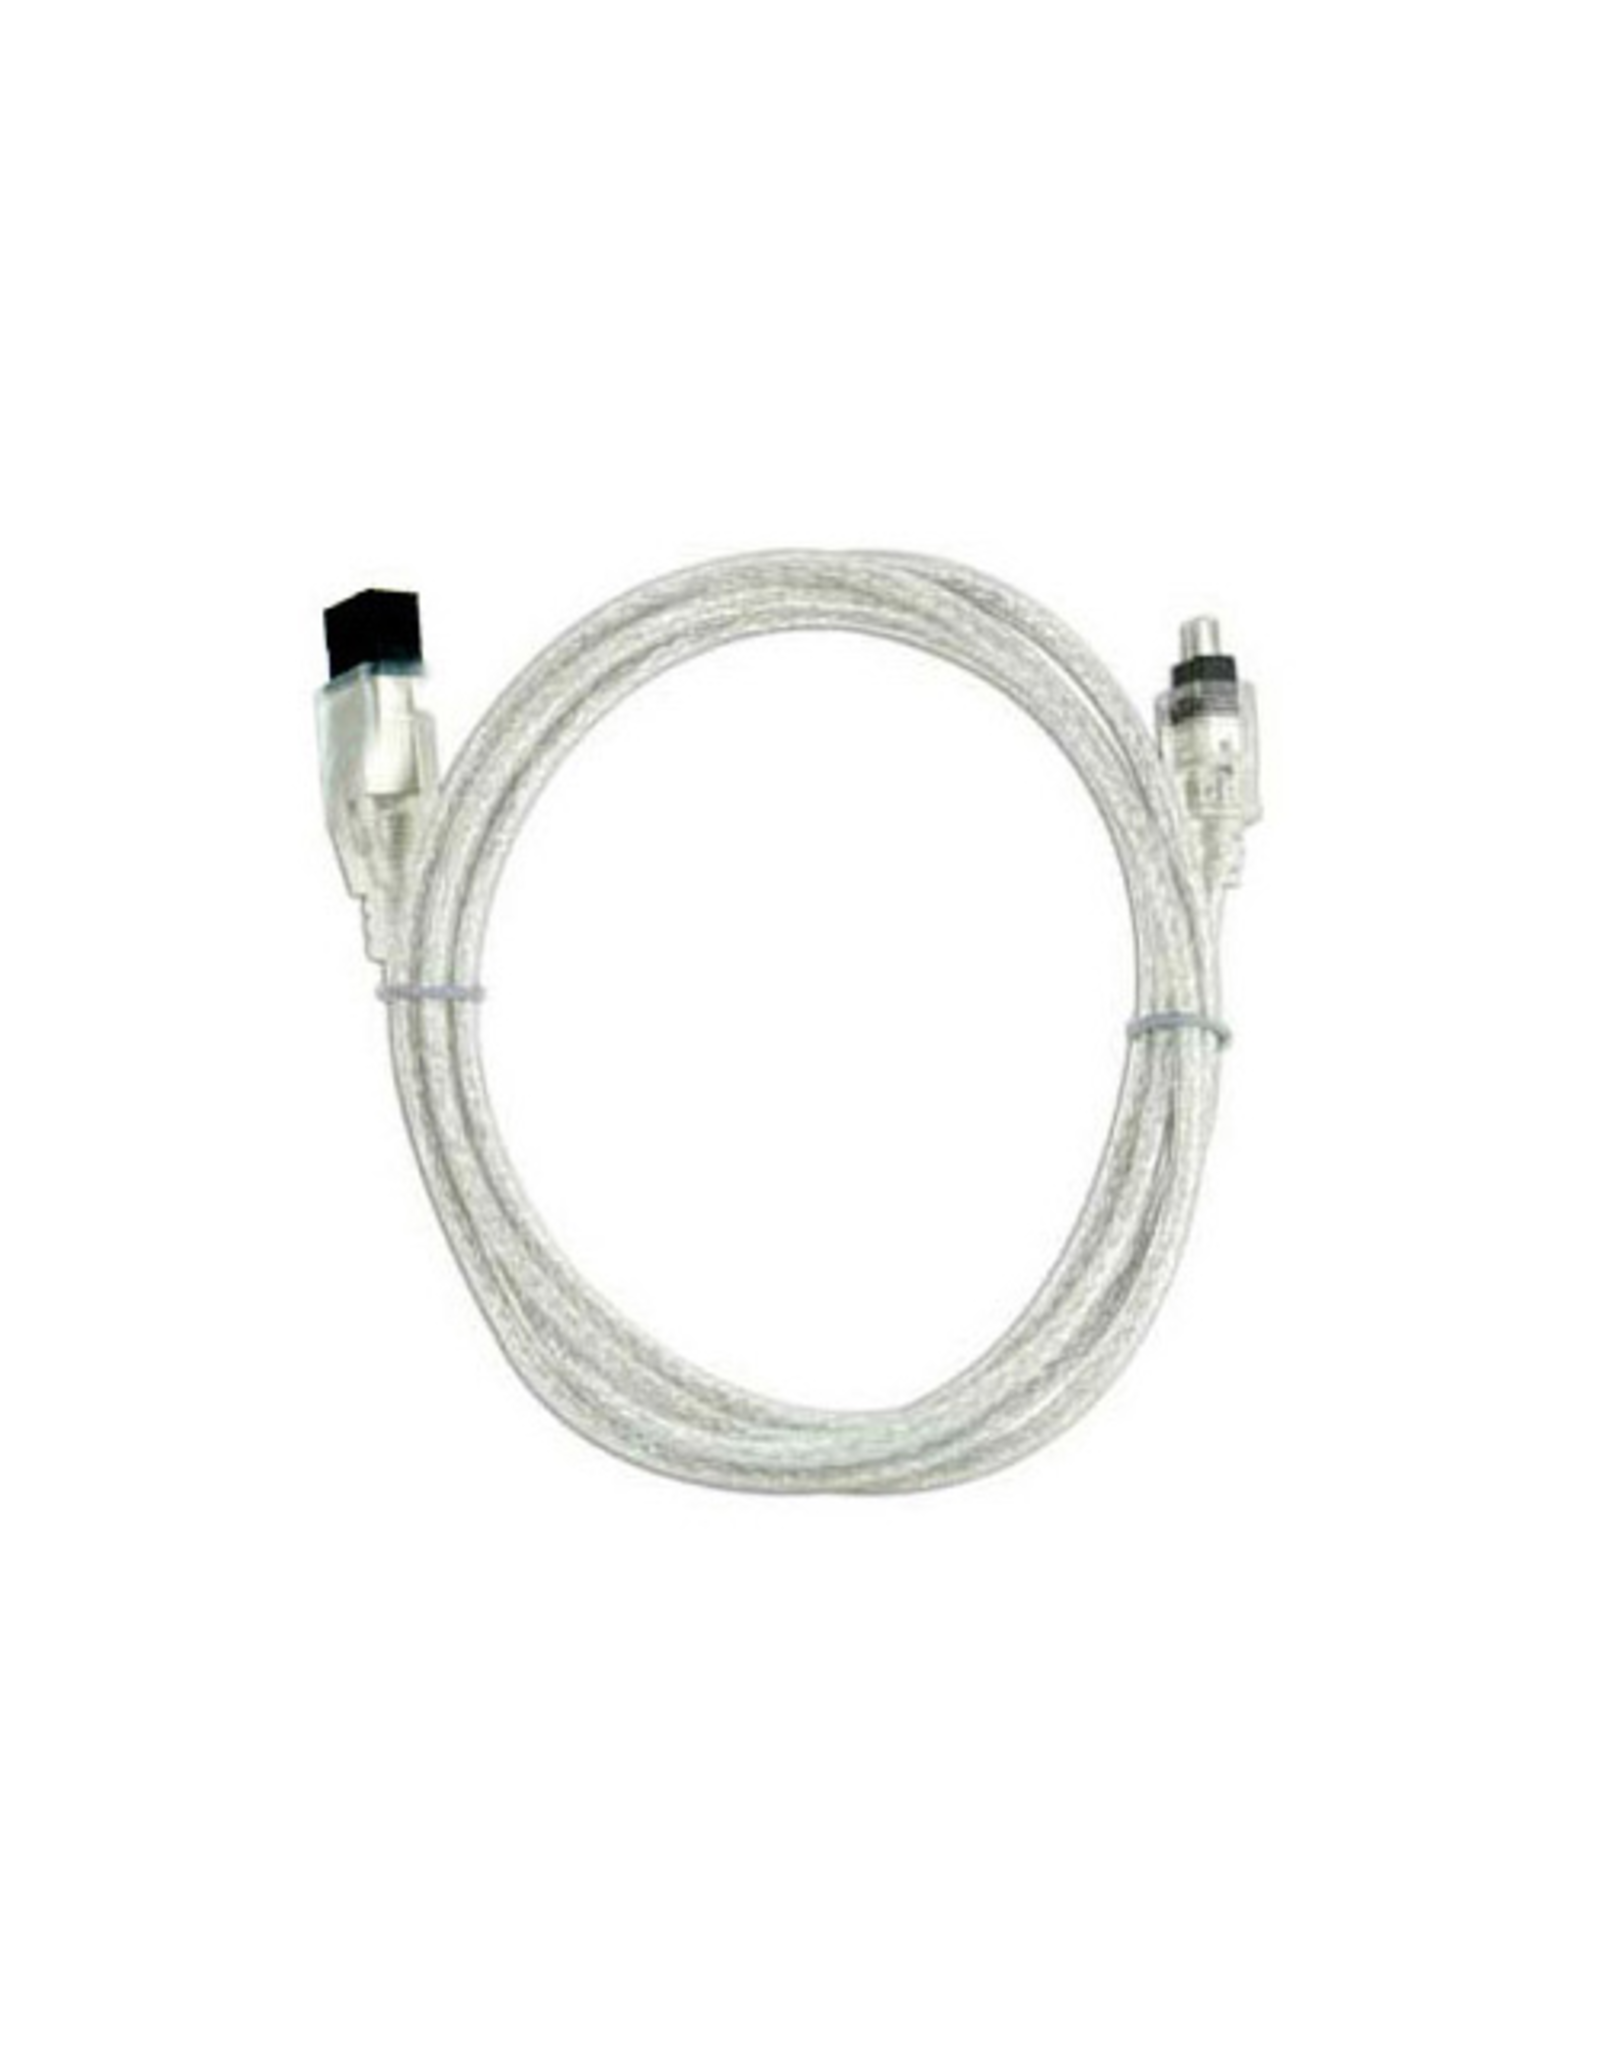 Newertech NewerTech FireWire 800/400 9-Pin to 4-Pin Cable - 1m